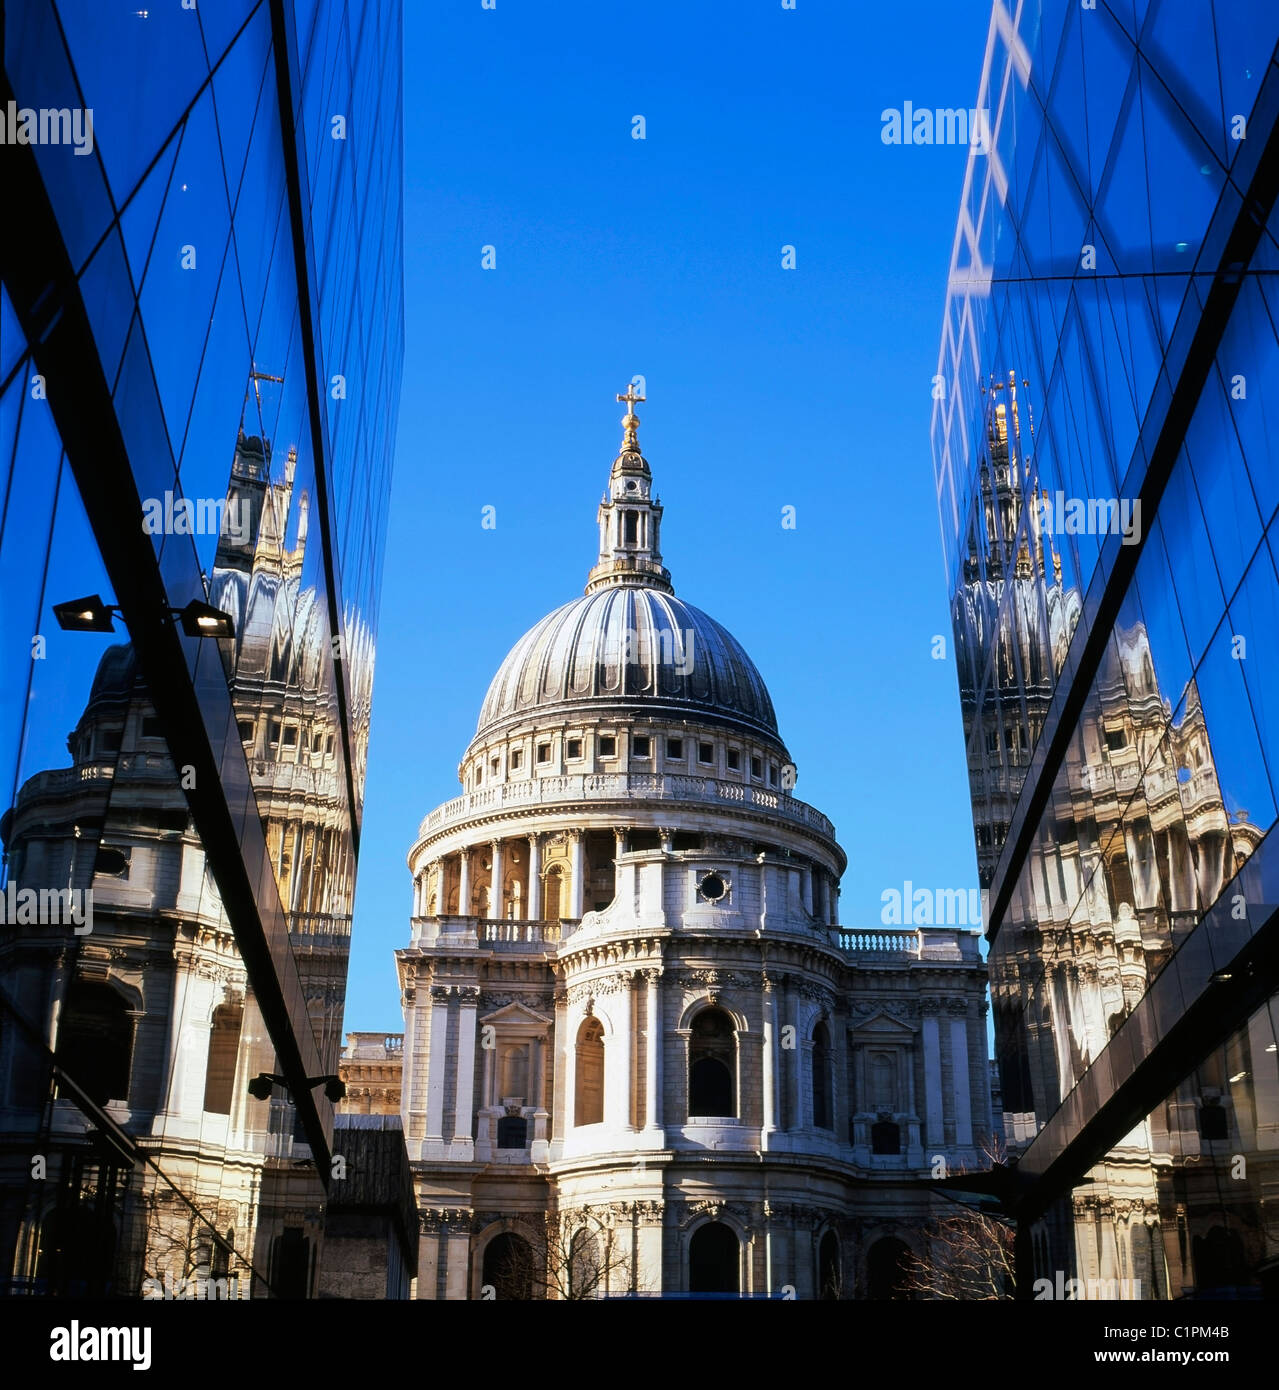 A view of St Pauls Cathedral and reflection of the building on glass walls of  One New Change shopping mall in Central - Stock Image